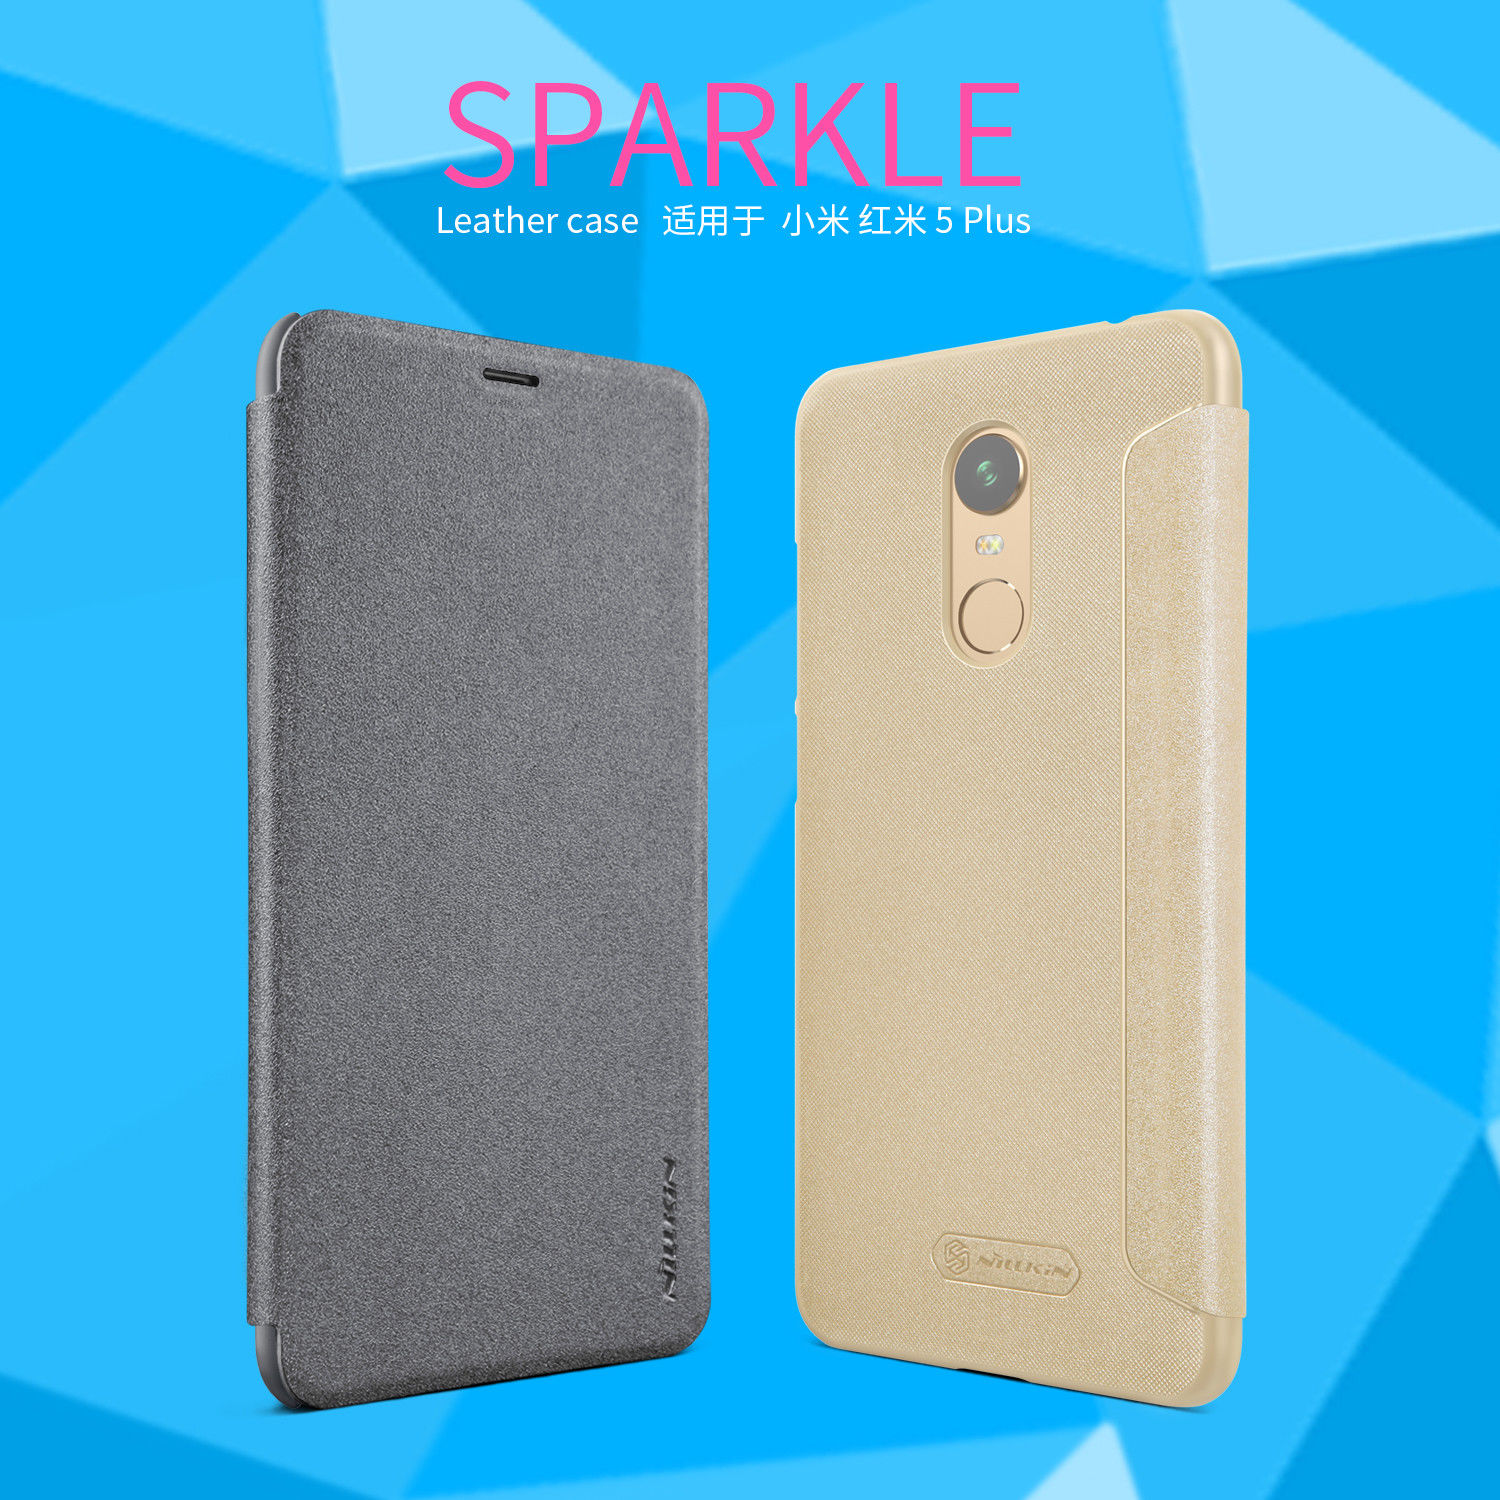 NILLKIN เคส Xiaomi Redmi 5 Plus รุ่น Sparkle Leather Case แท้ !!